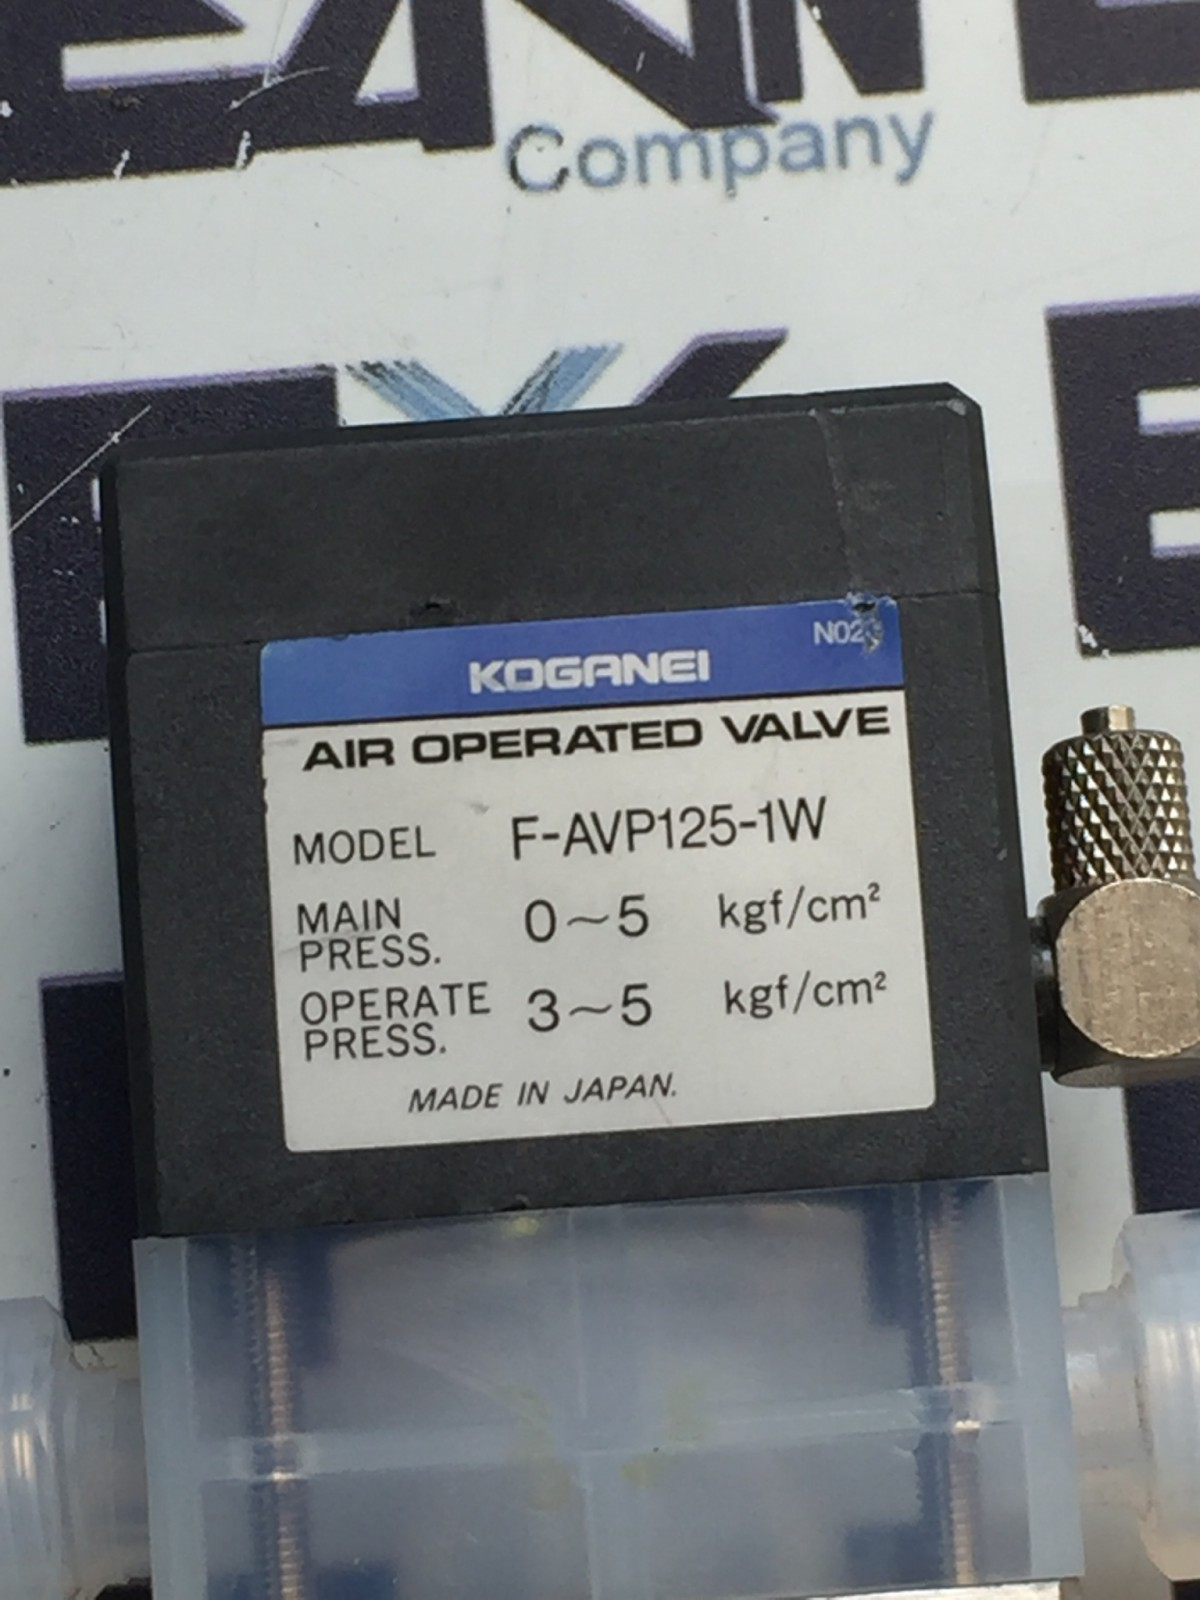 KOGANEI F-AVP125-1W AIR OPERATED VALVE